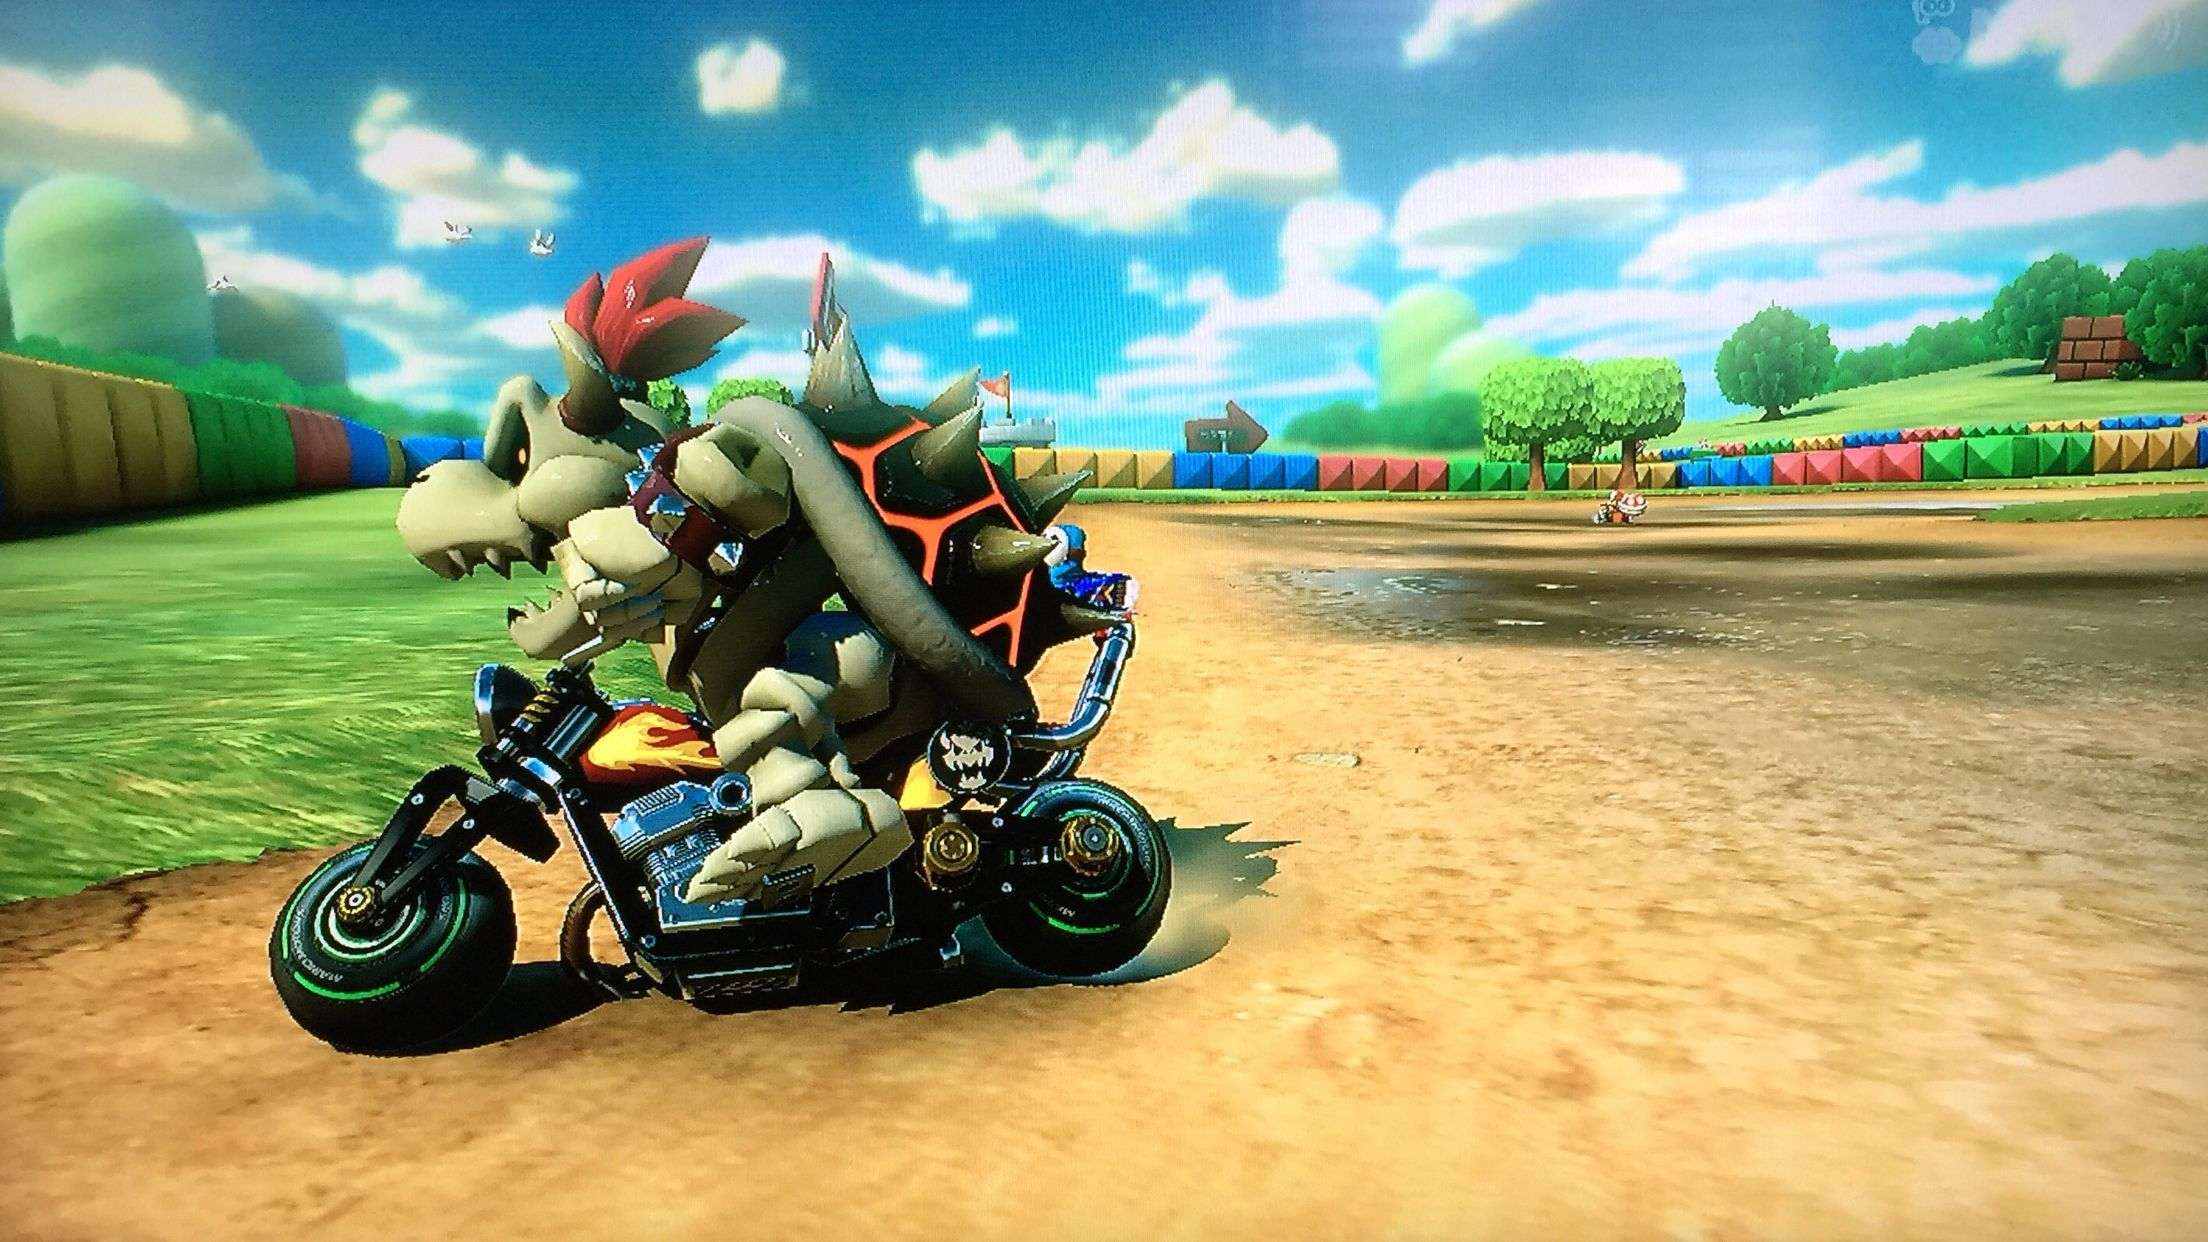 Mario kart 8 for sale - Dry Bowser Mario Kart 8